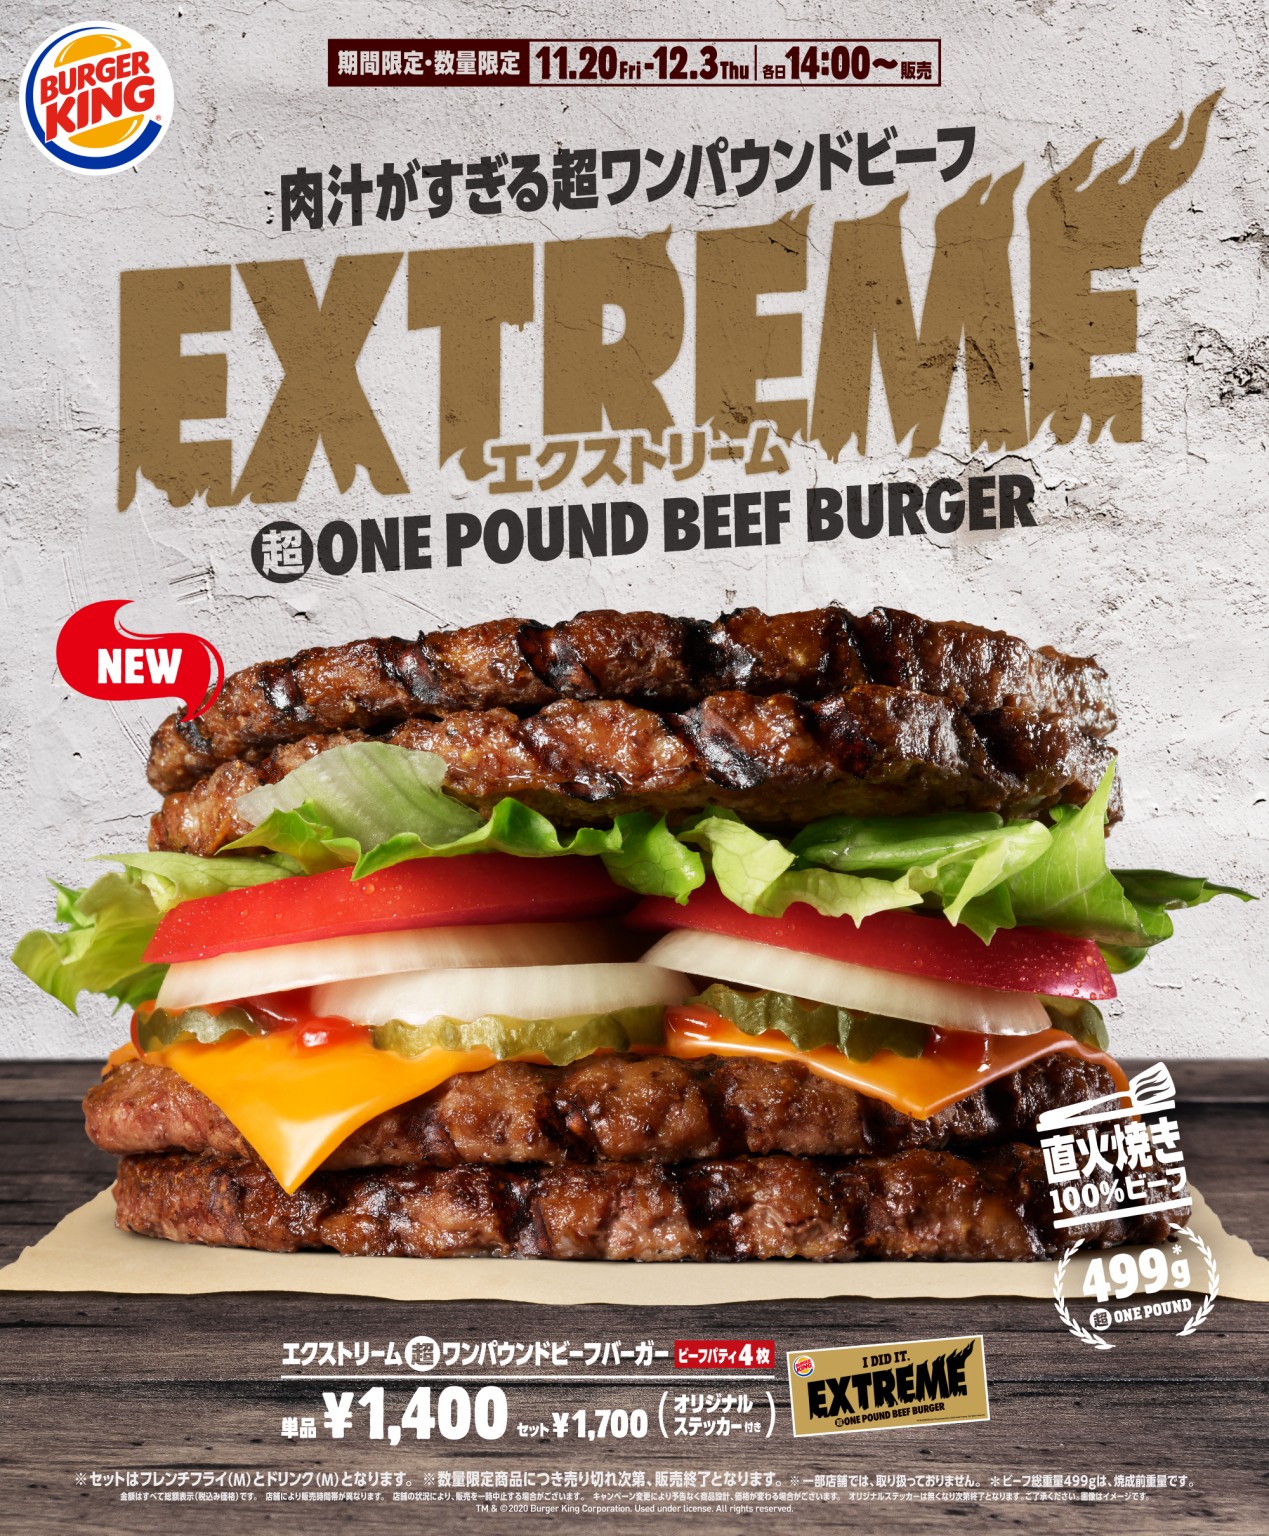 Brger-King-Japan-Extreme-Super-One-Pound-Beef-Bunless-breadless-meat-buns-Japanese-fast-food-1.jpg